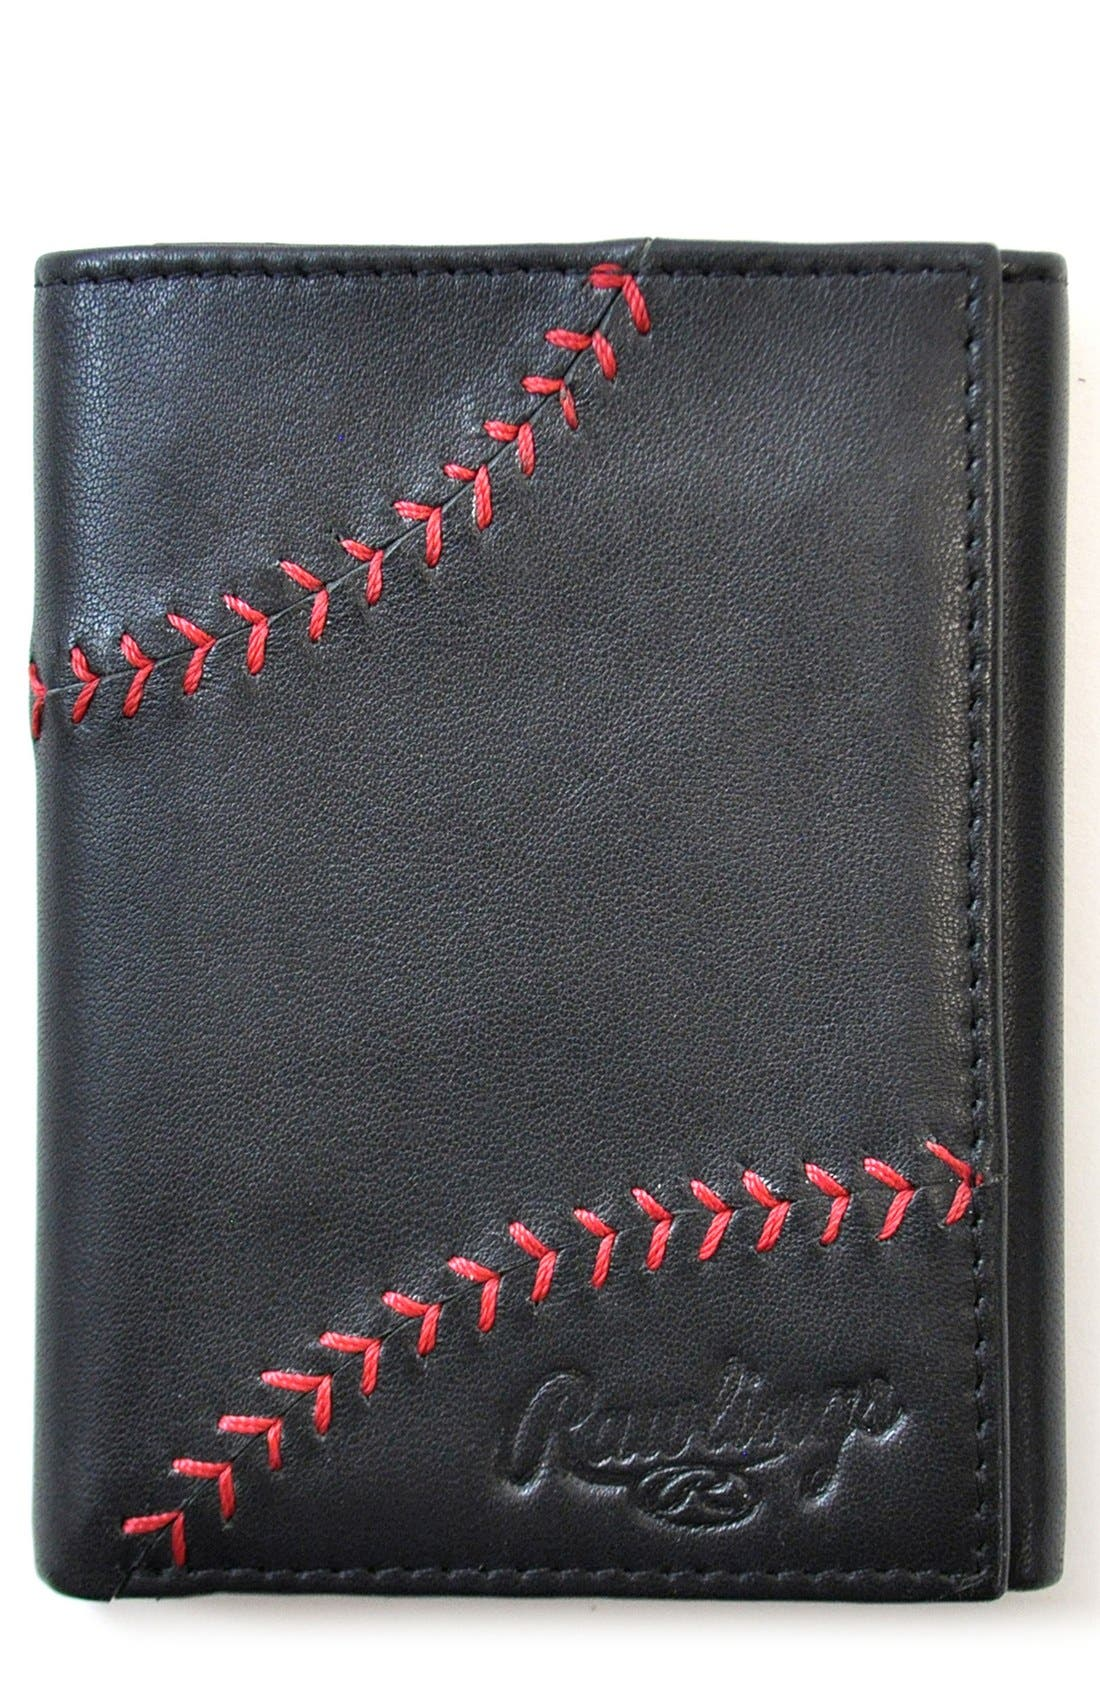 Baseball Stitch Leather Trifold Wallet,                             Main thumbnail 1, color,                             Black